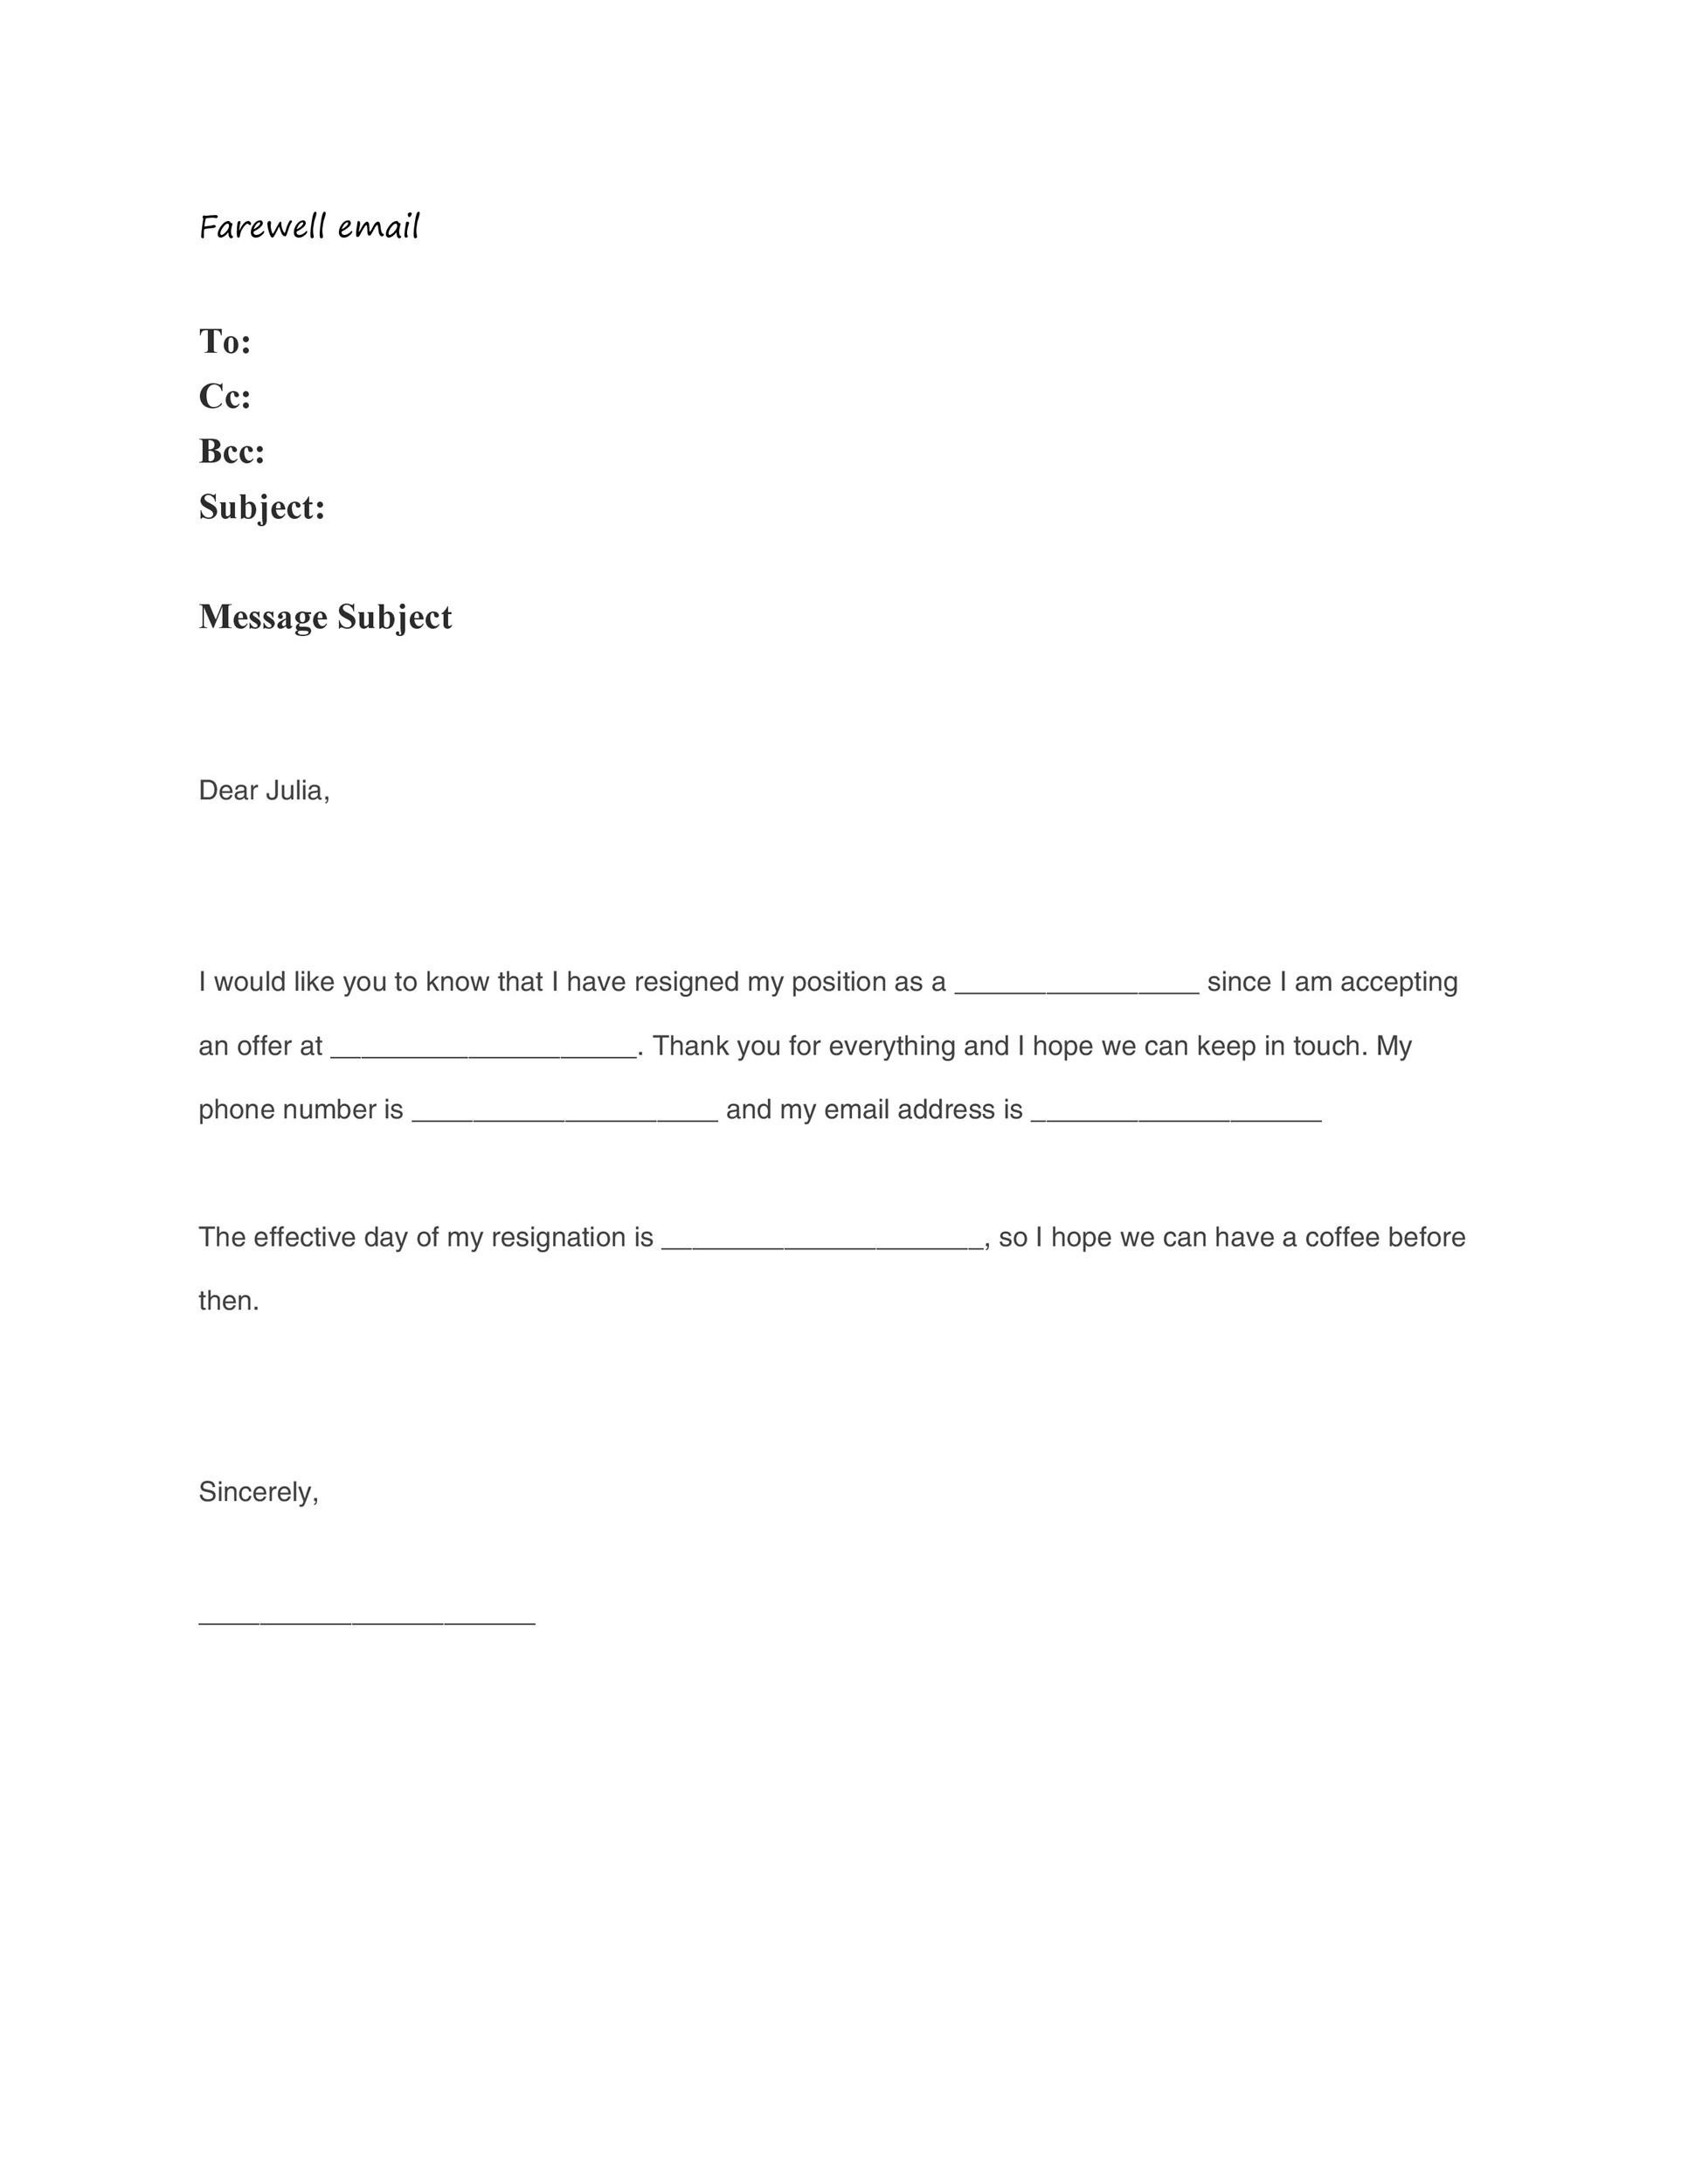 Free farewell email template 09